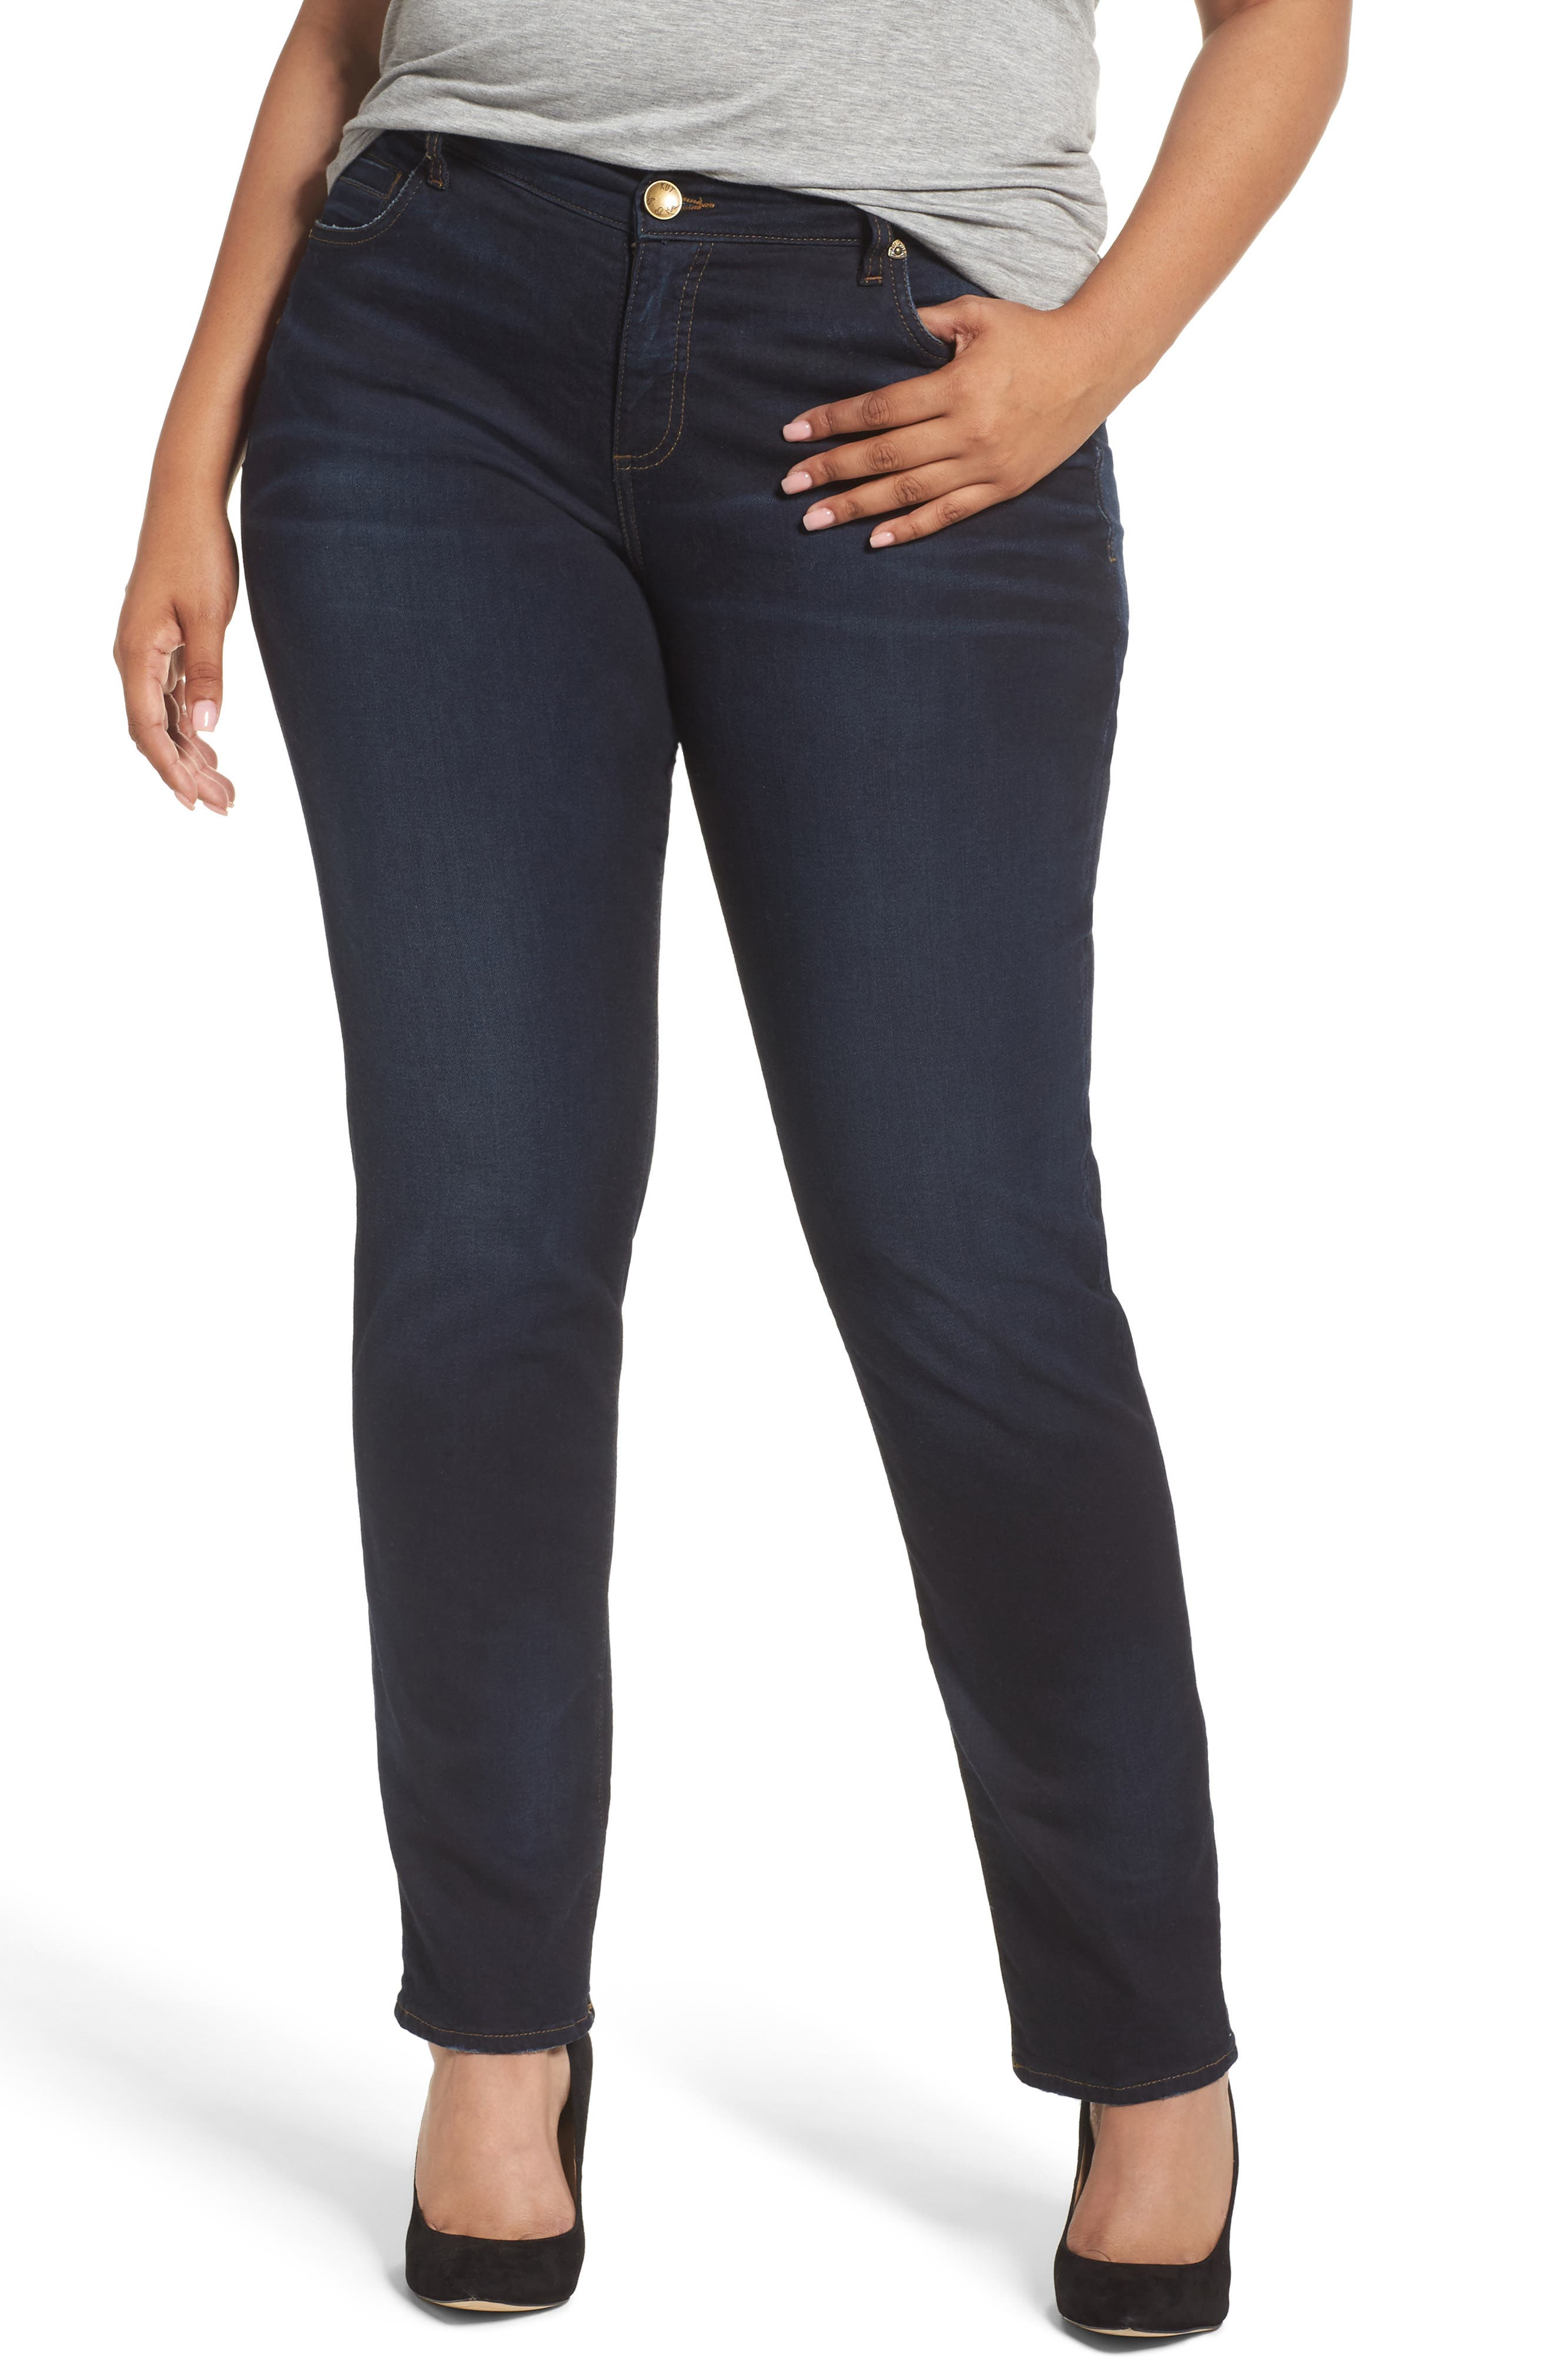 Diana Stretch Skinny Jeans,                             Main thumbnail 1, color,                             400